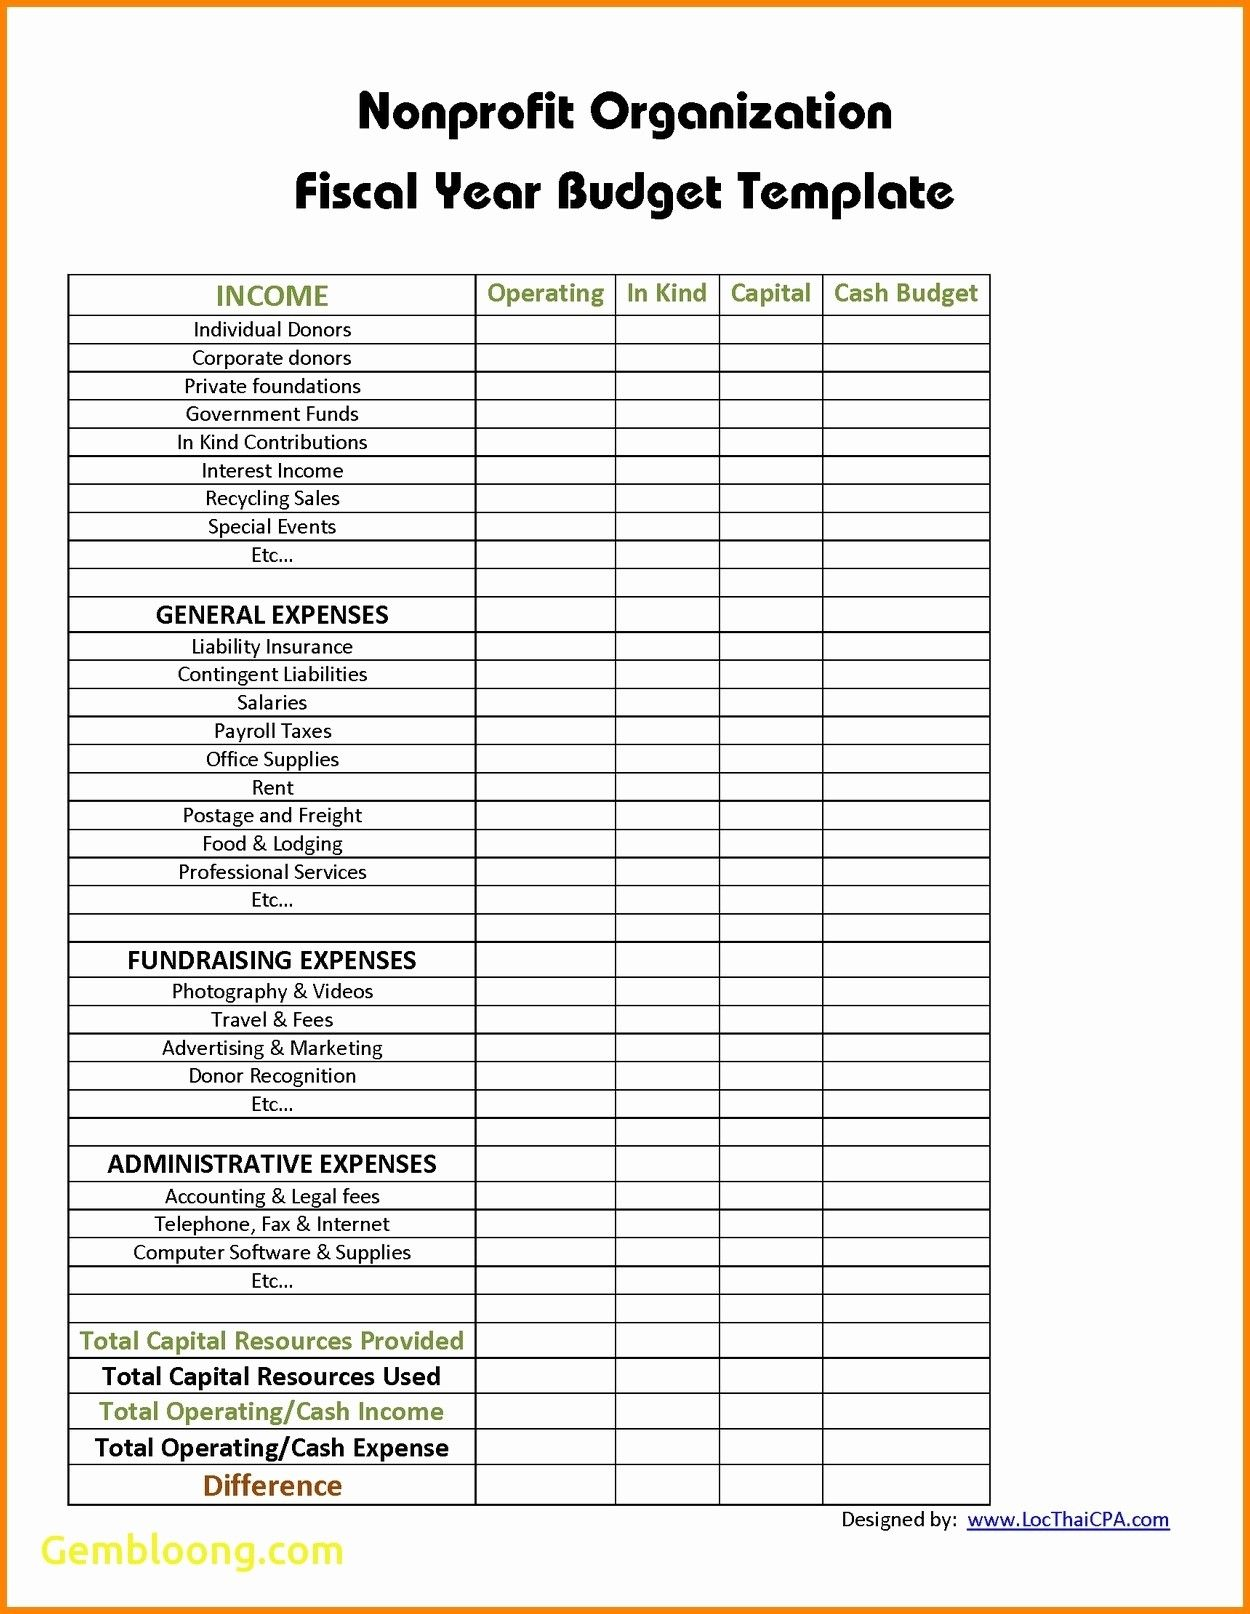 Blank Non Profit Budget Template Excel Throughout Non Profit Budget Template Excel For Google Spreadsheet